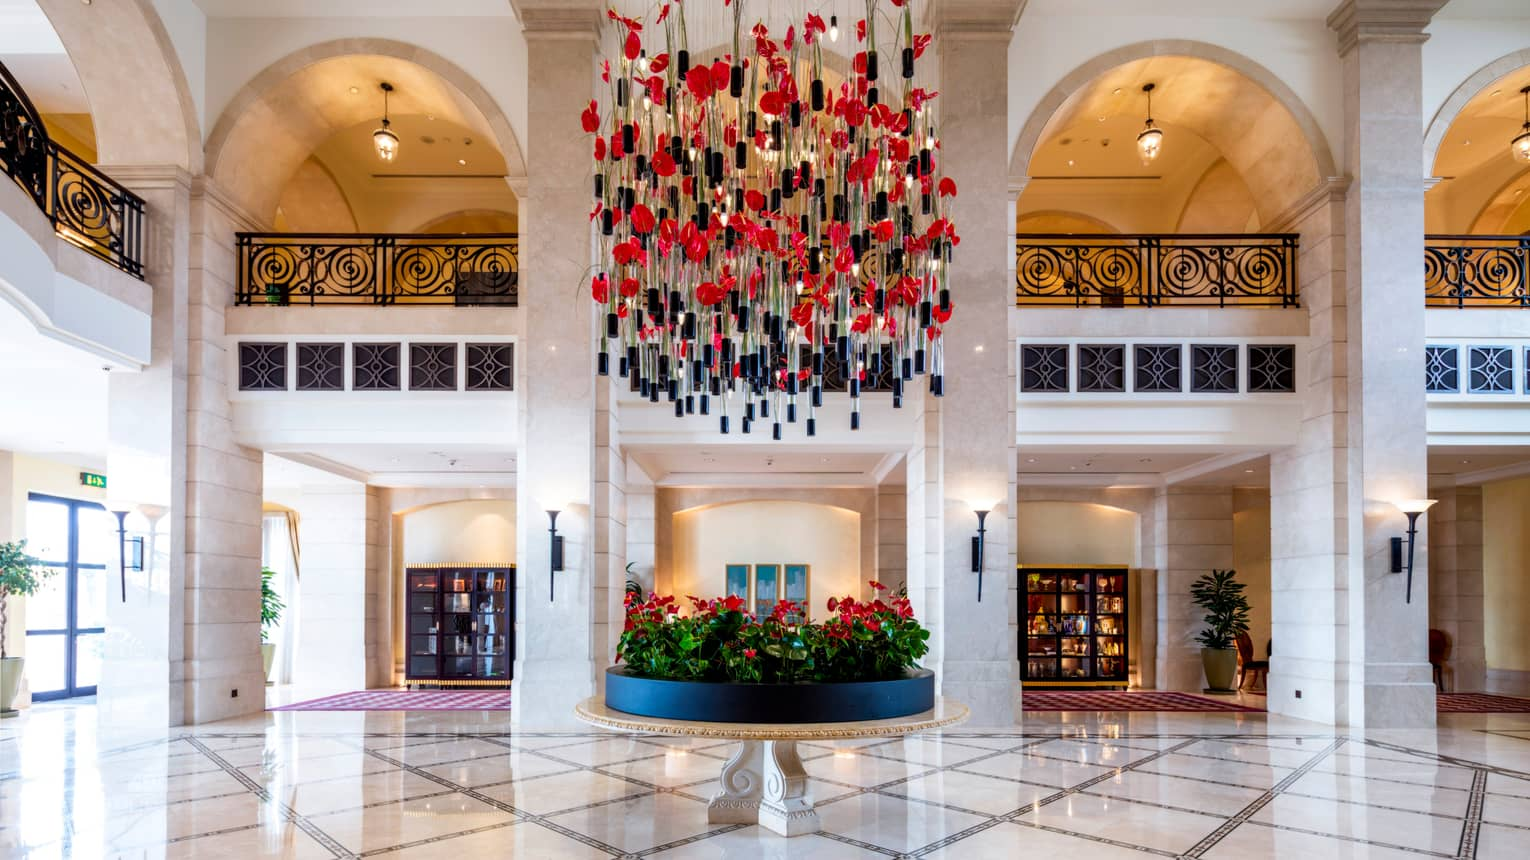 Art piece with red flowers, stems with black caps hangs from two-storey lobby ceiling, white tiles, iron balconies